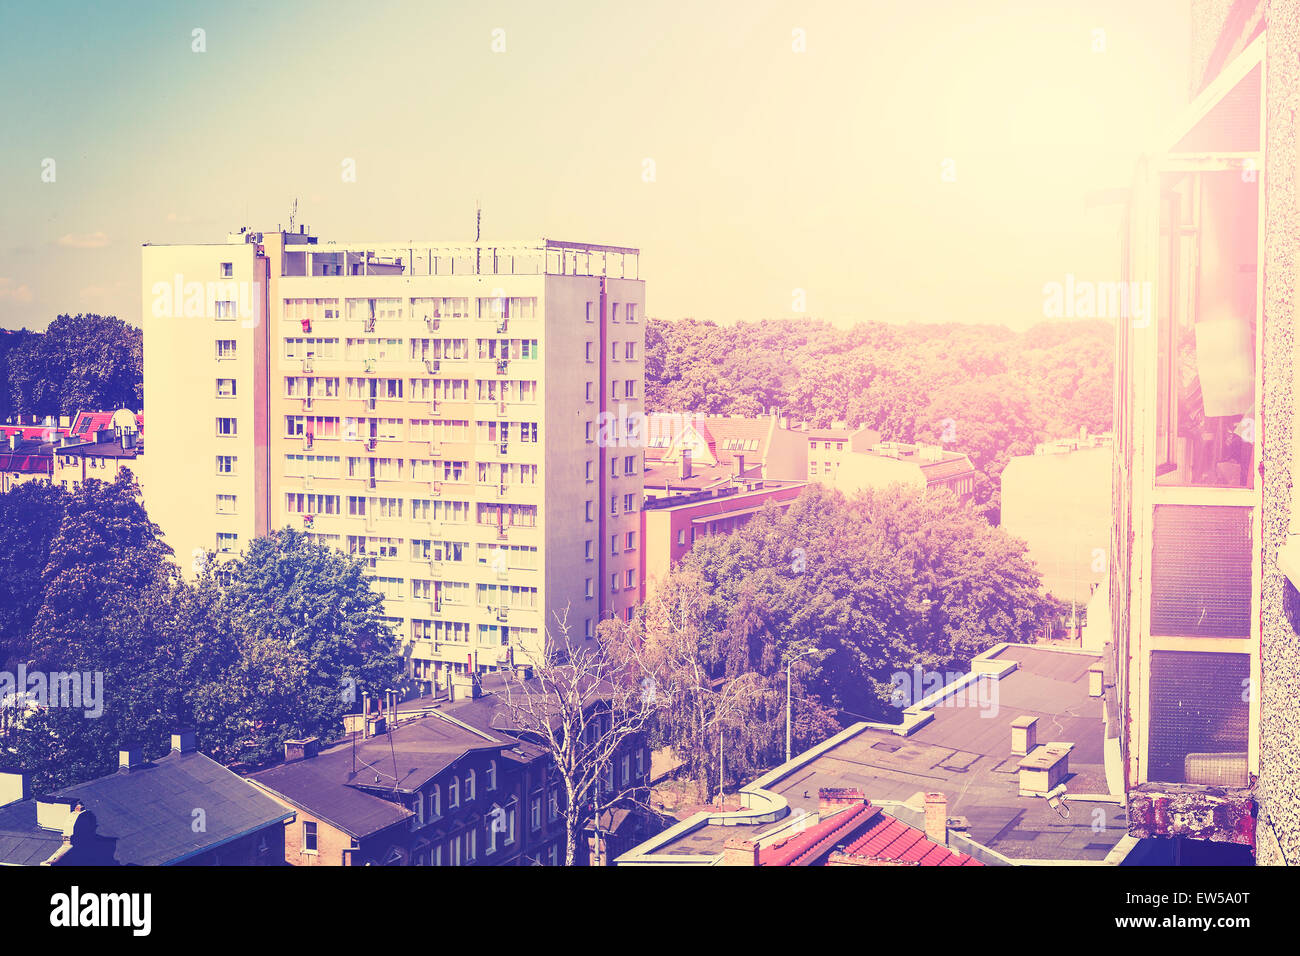 Retro toned picture of residential block apartments at sunset, nature and housing coexistence concept. Stock Photo